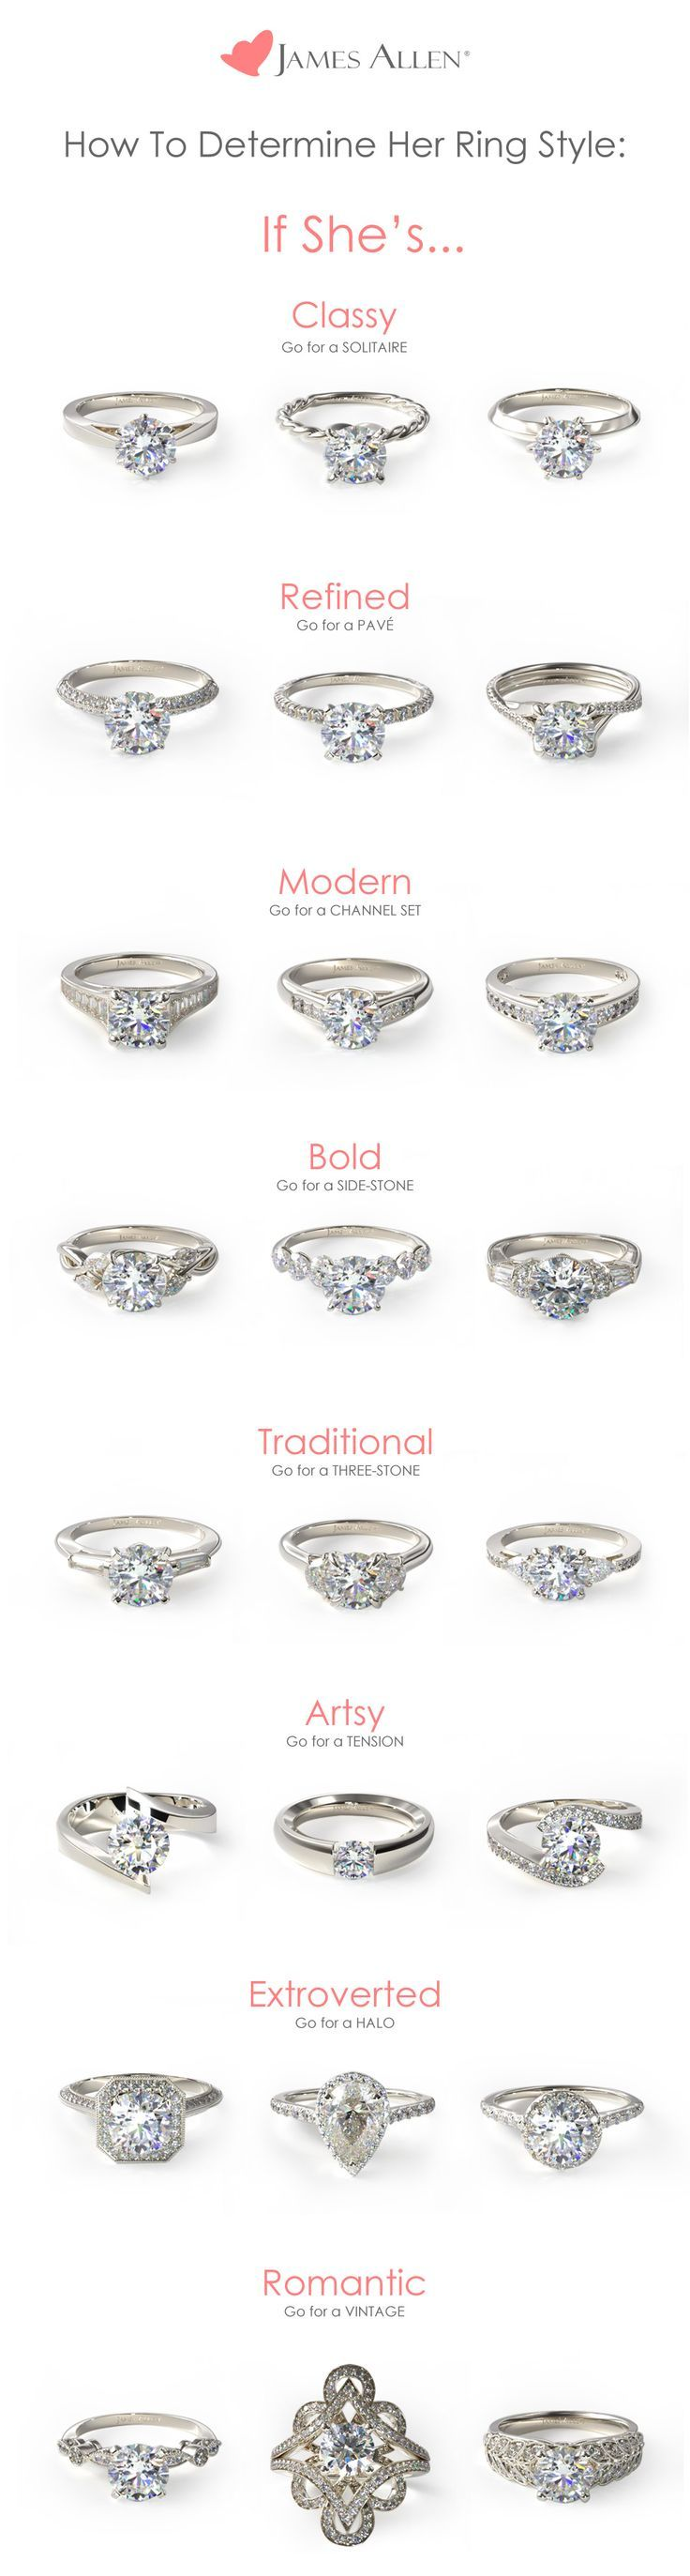 ring game gamer wedding rings Find this Pin and more on Rings I m In Love With